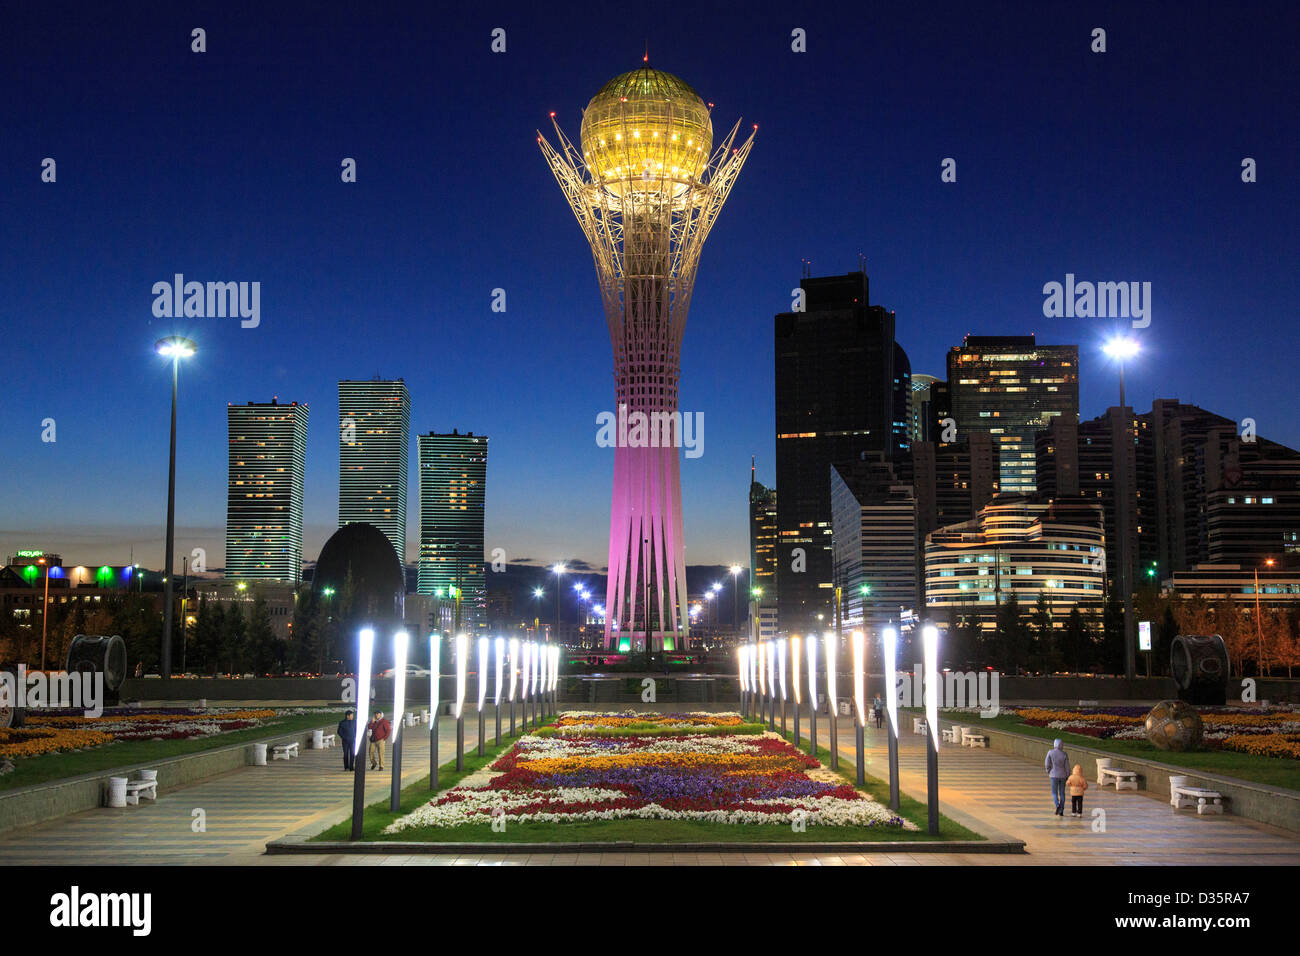 Baiterek tower, the national monument of Kazakhstan, in the nation's capital, Astana - Stock Image